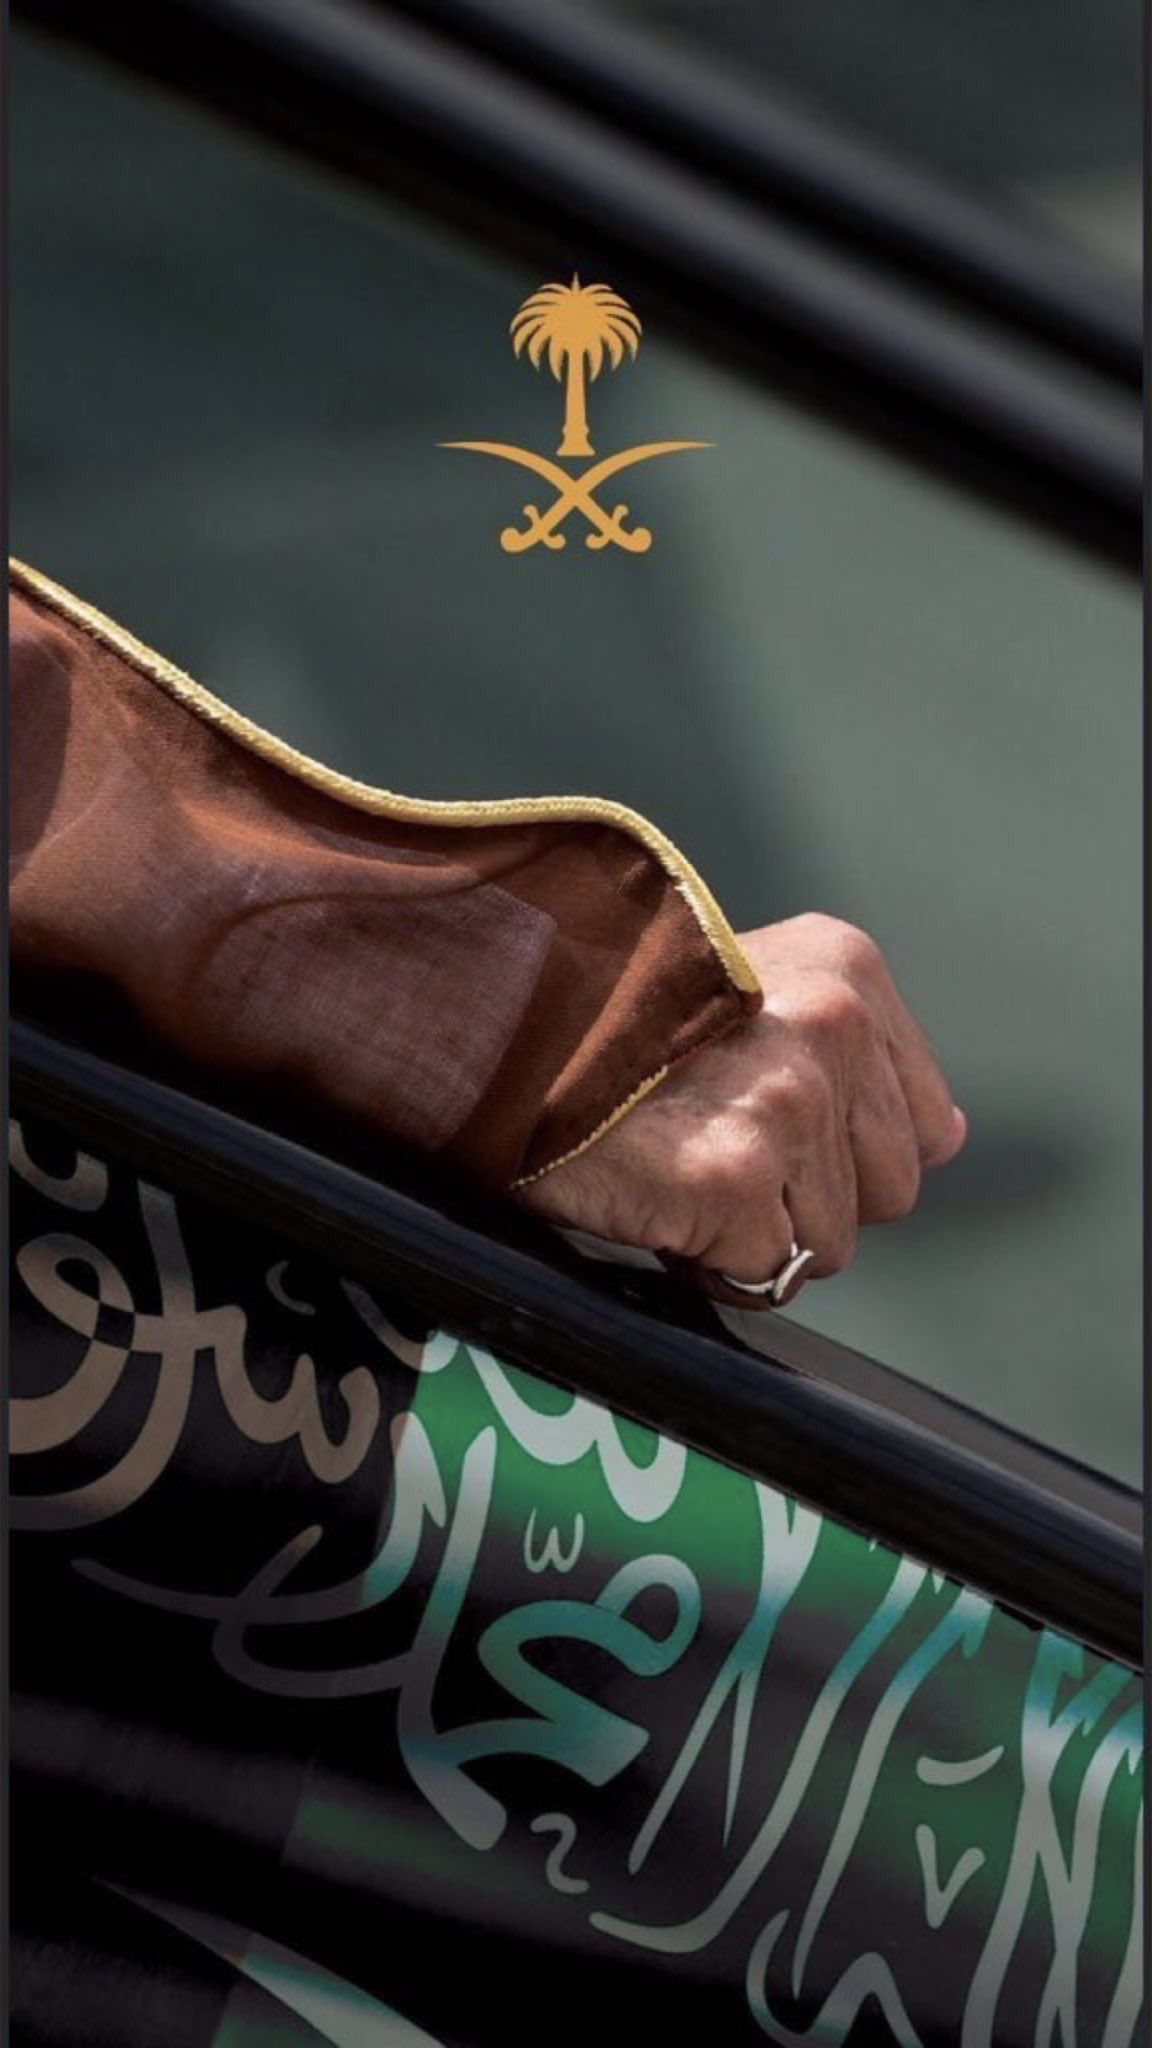 Pin By Zex On Saudi National Day Ksa Saudi Arabia Saudi Arabia Flag National Day Saudi